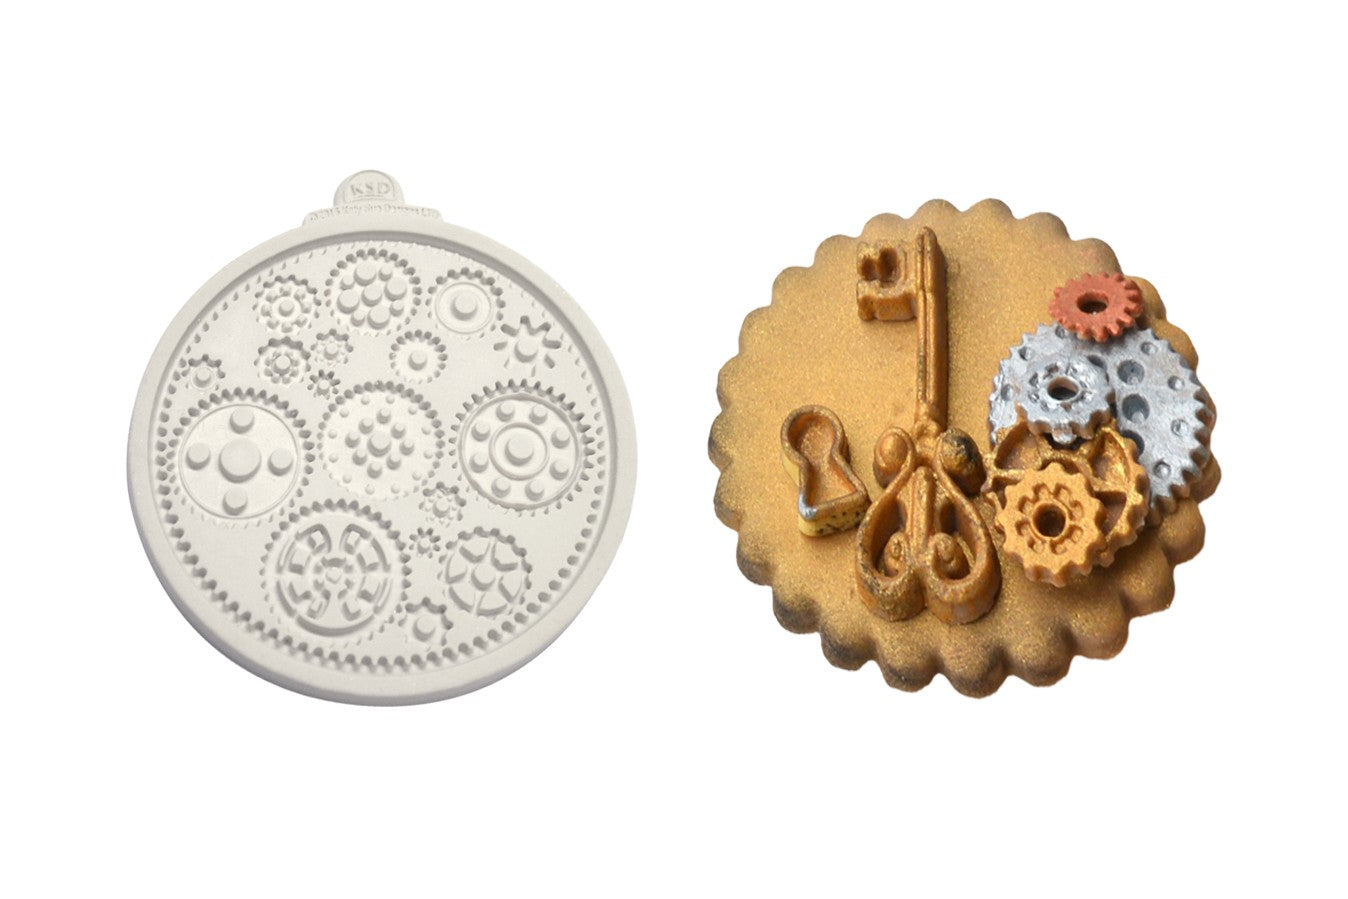 Katy Sue Moulds: Cogs & Wheels